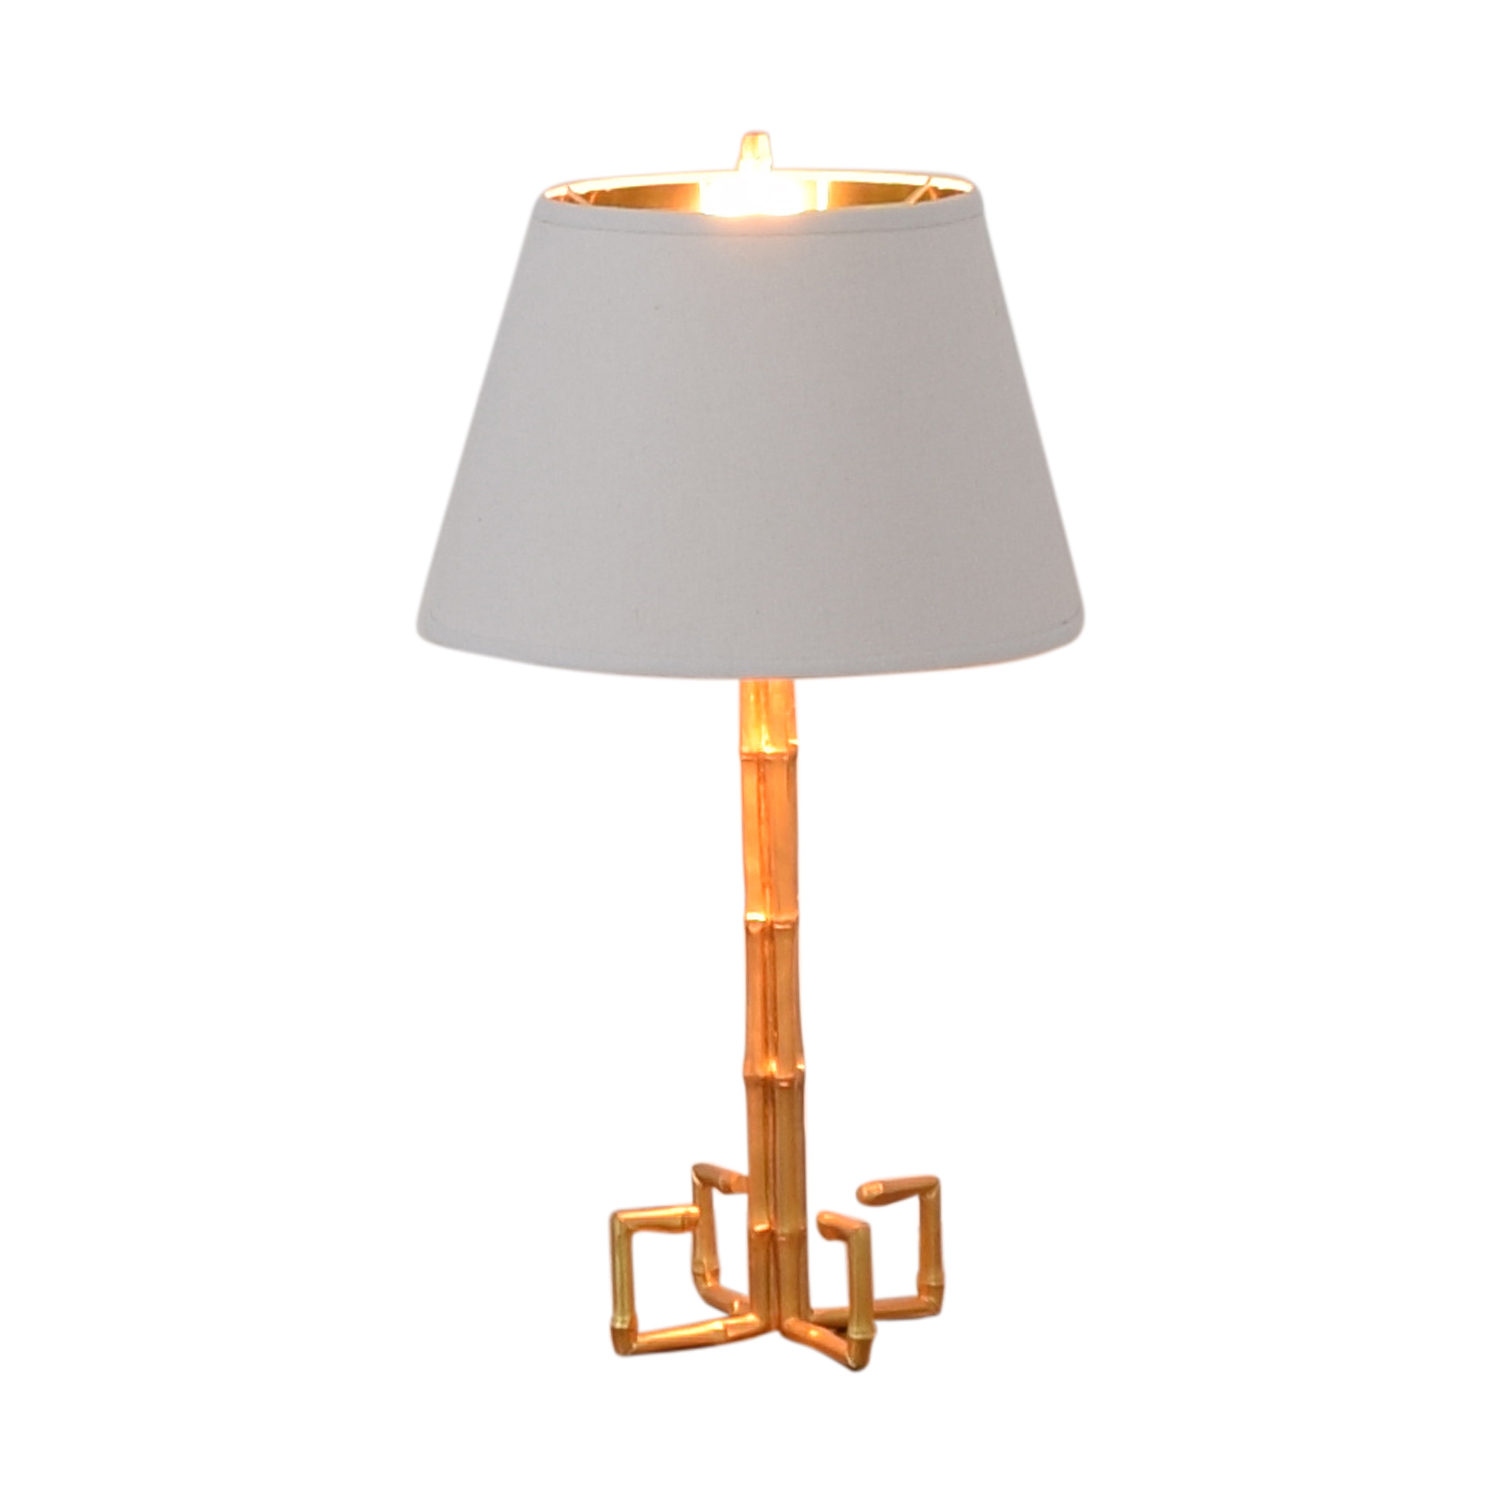 Horchow Horchow Golden Bamboo Table Lamp coupon